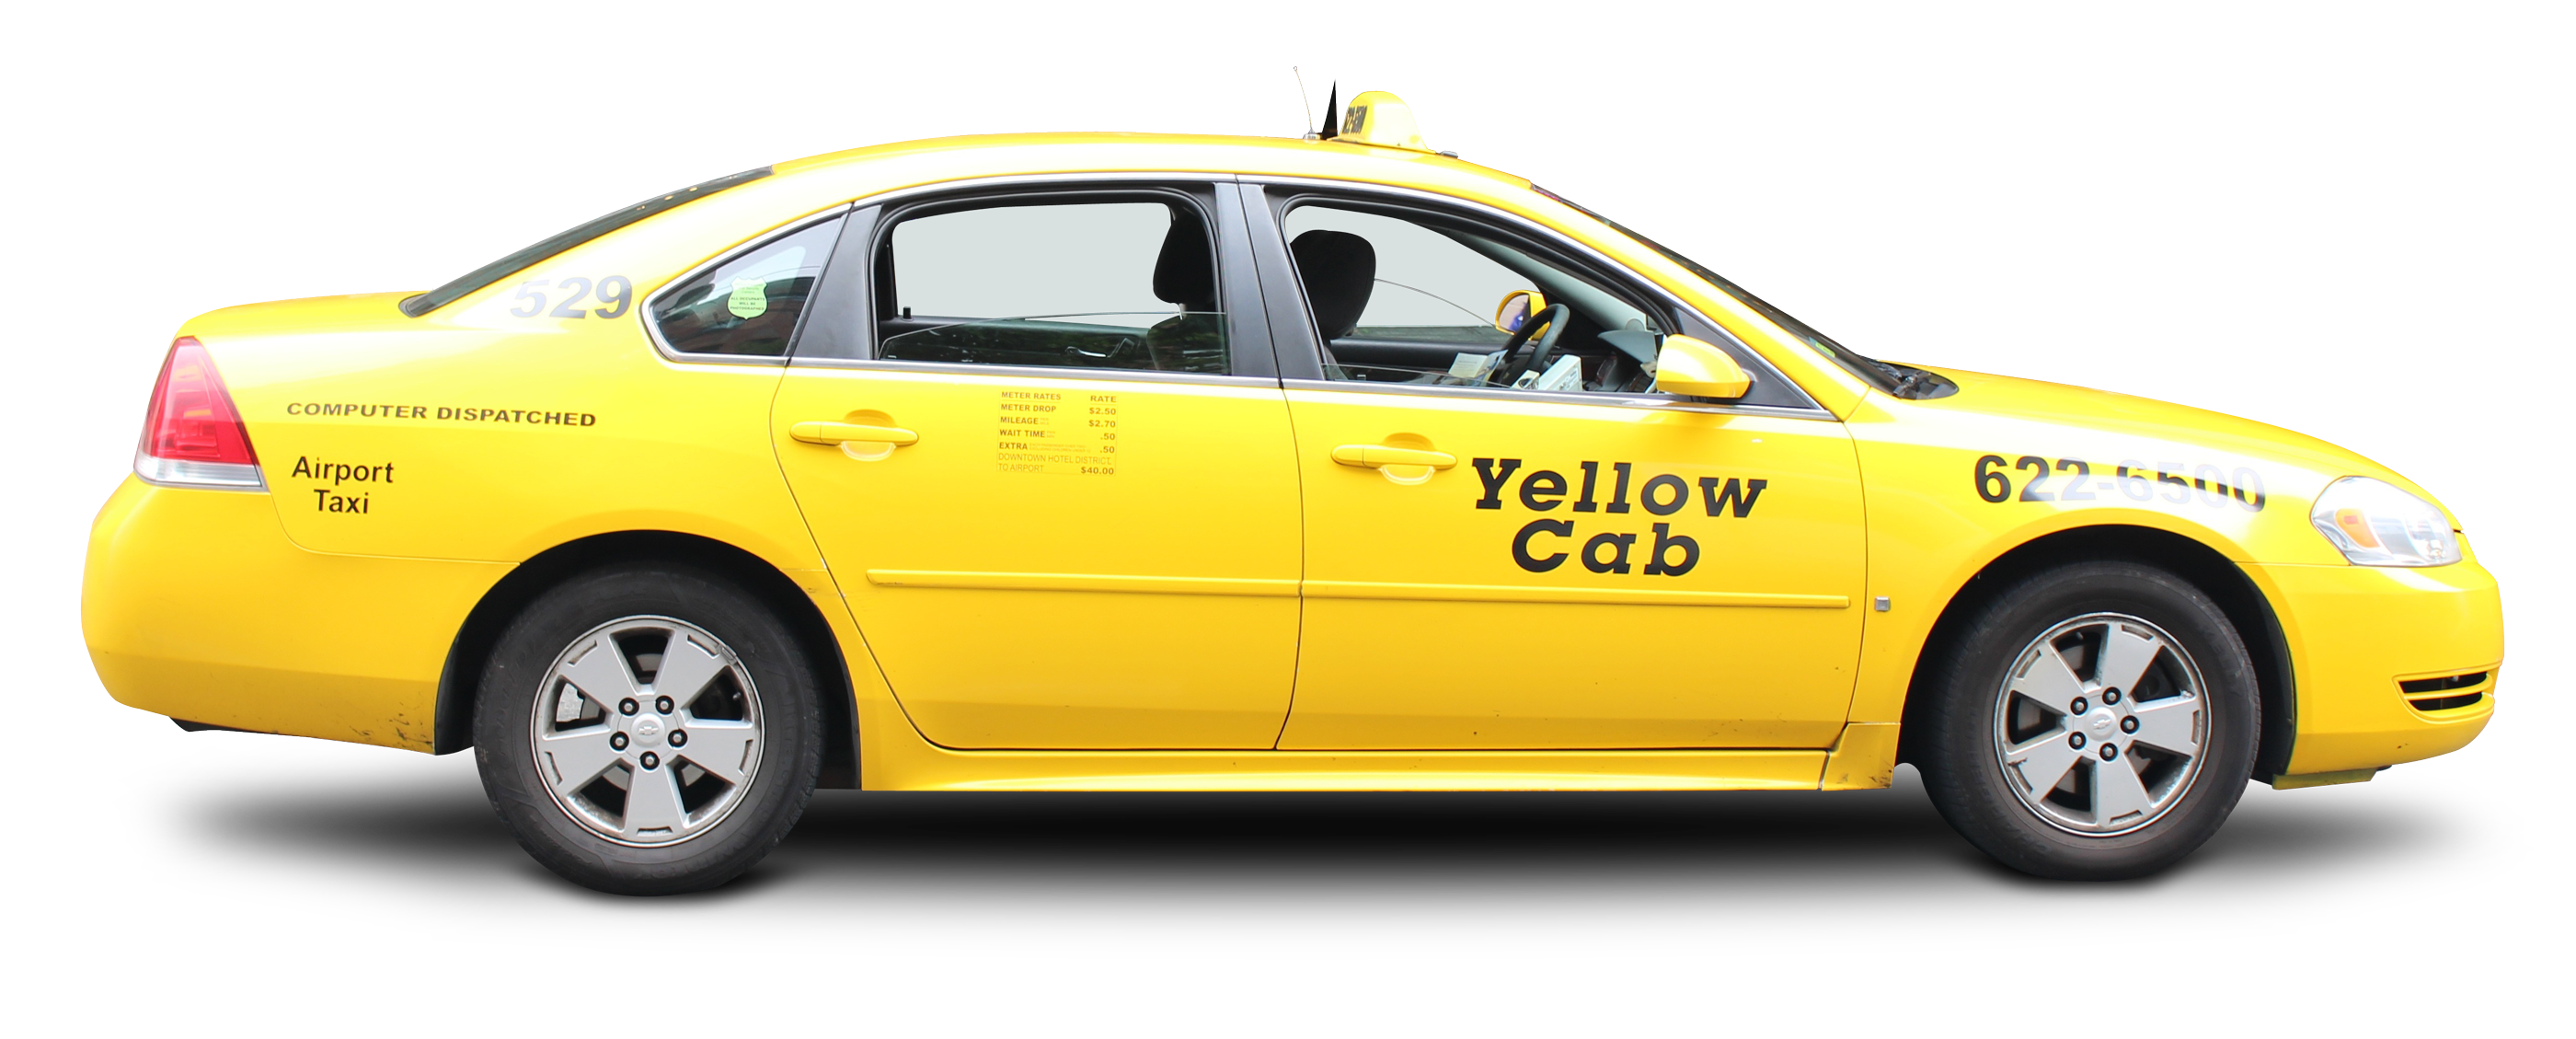 Taxi clipart transparent Yellow cab image images free